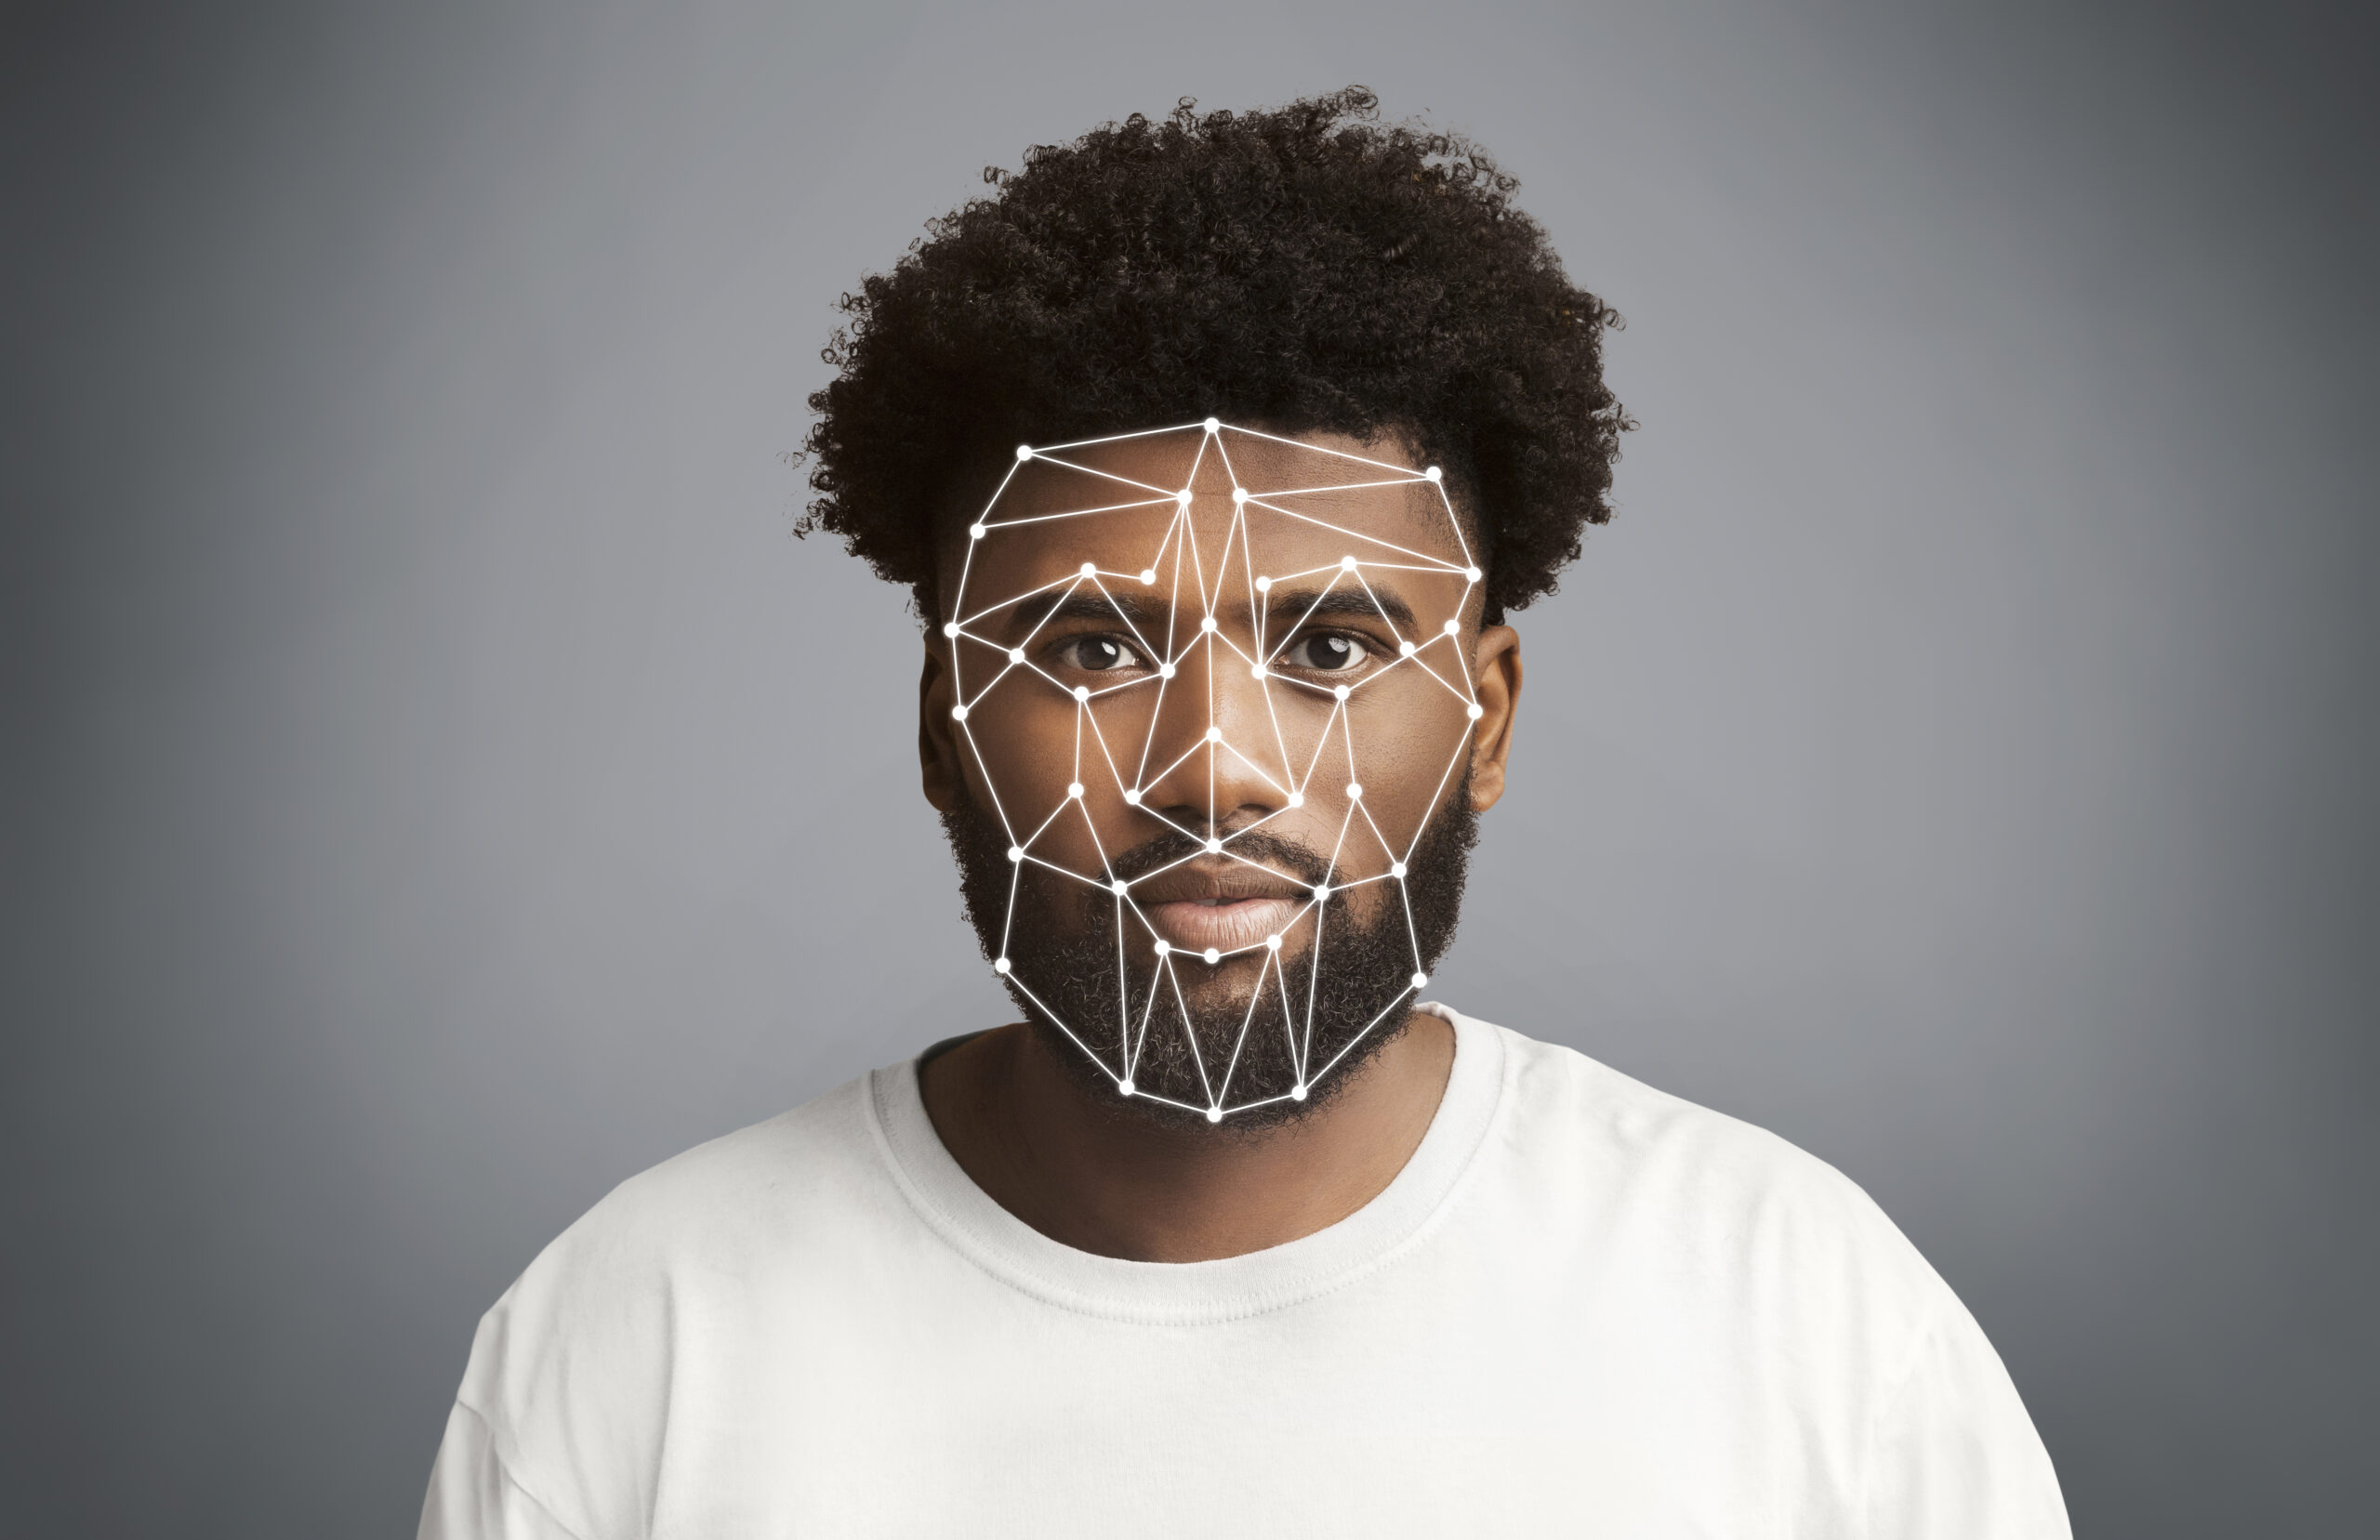 Asset managers unite in human rights pledge on facial recognition concerns